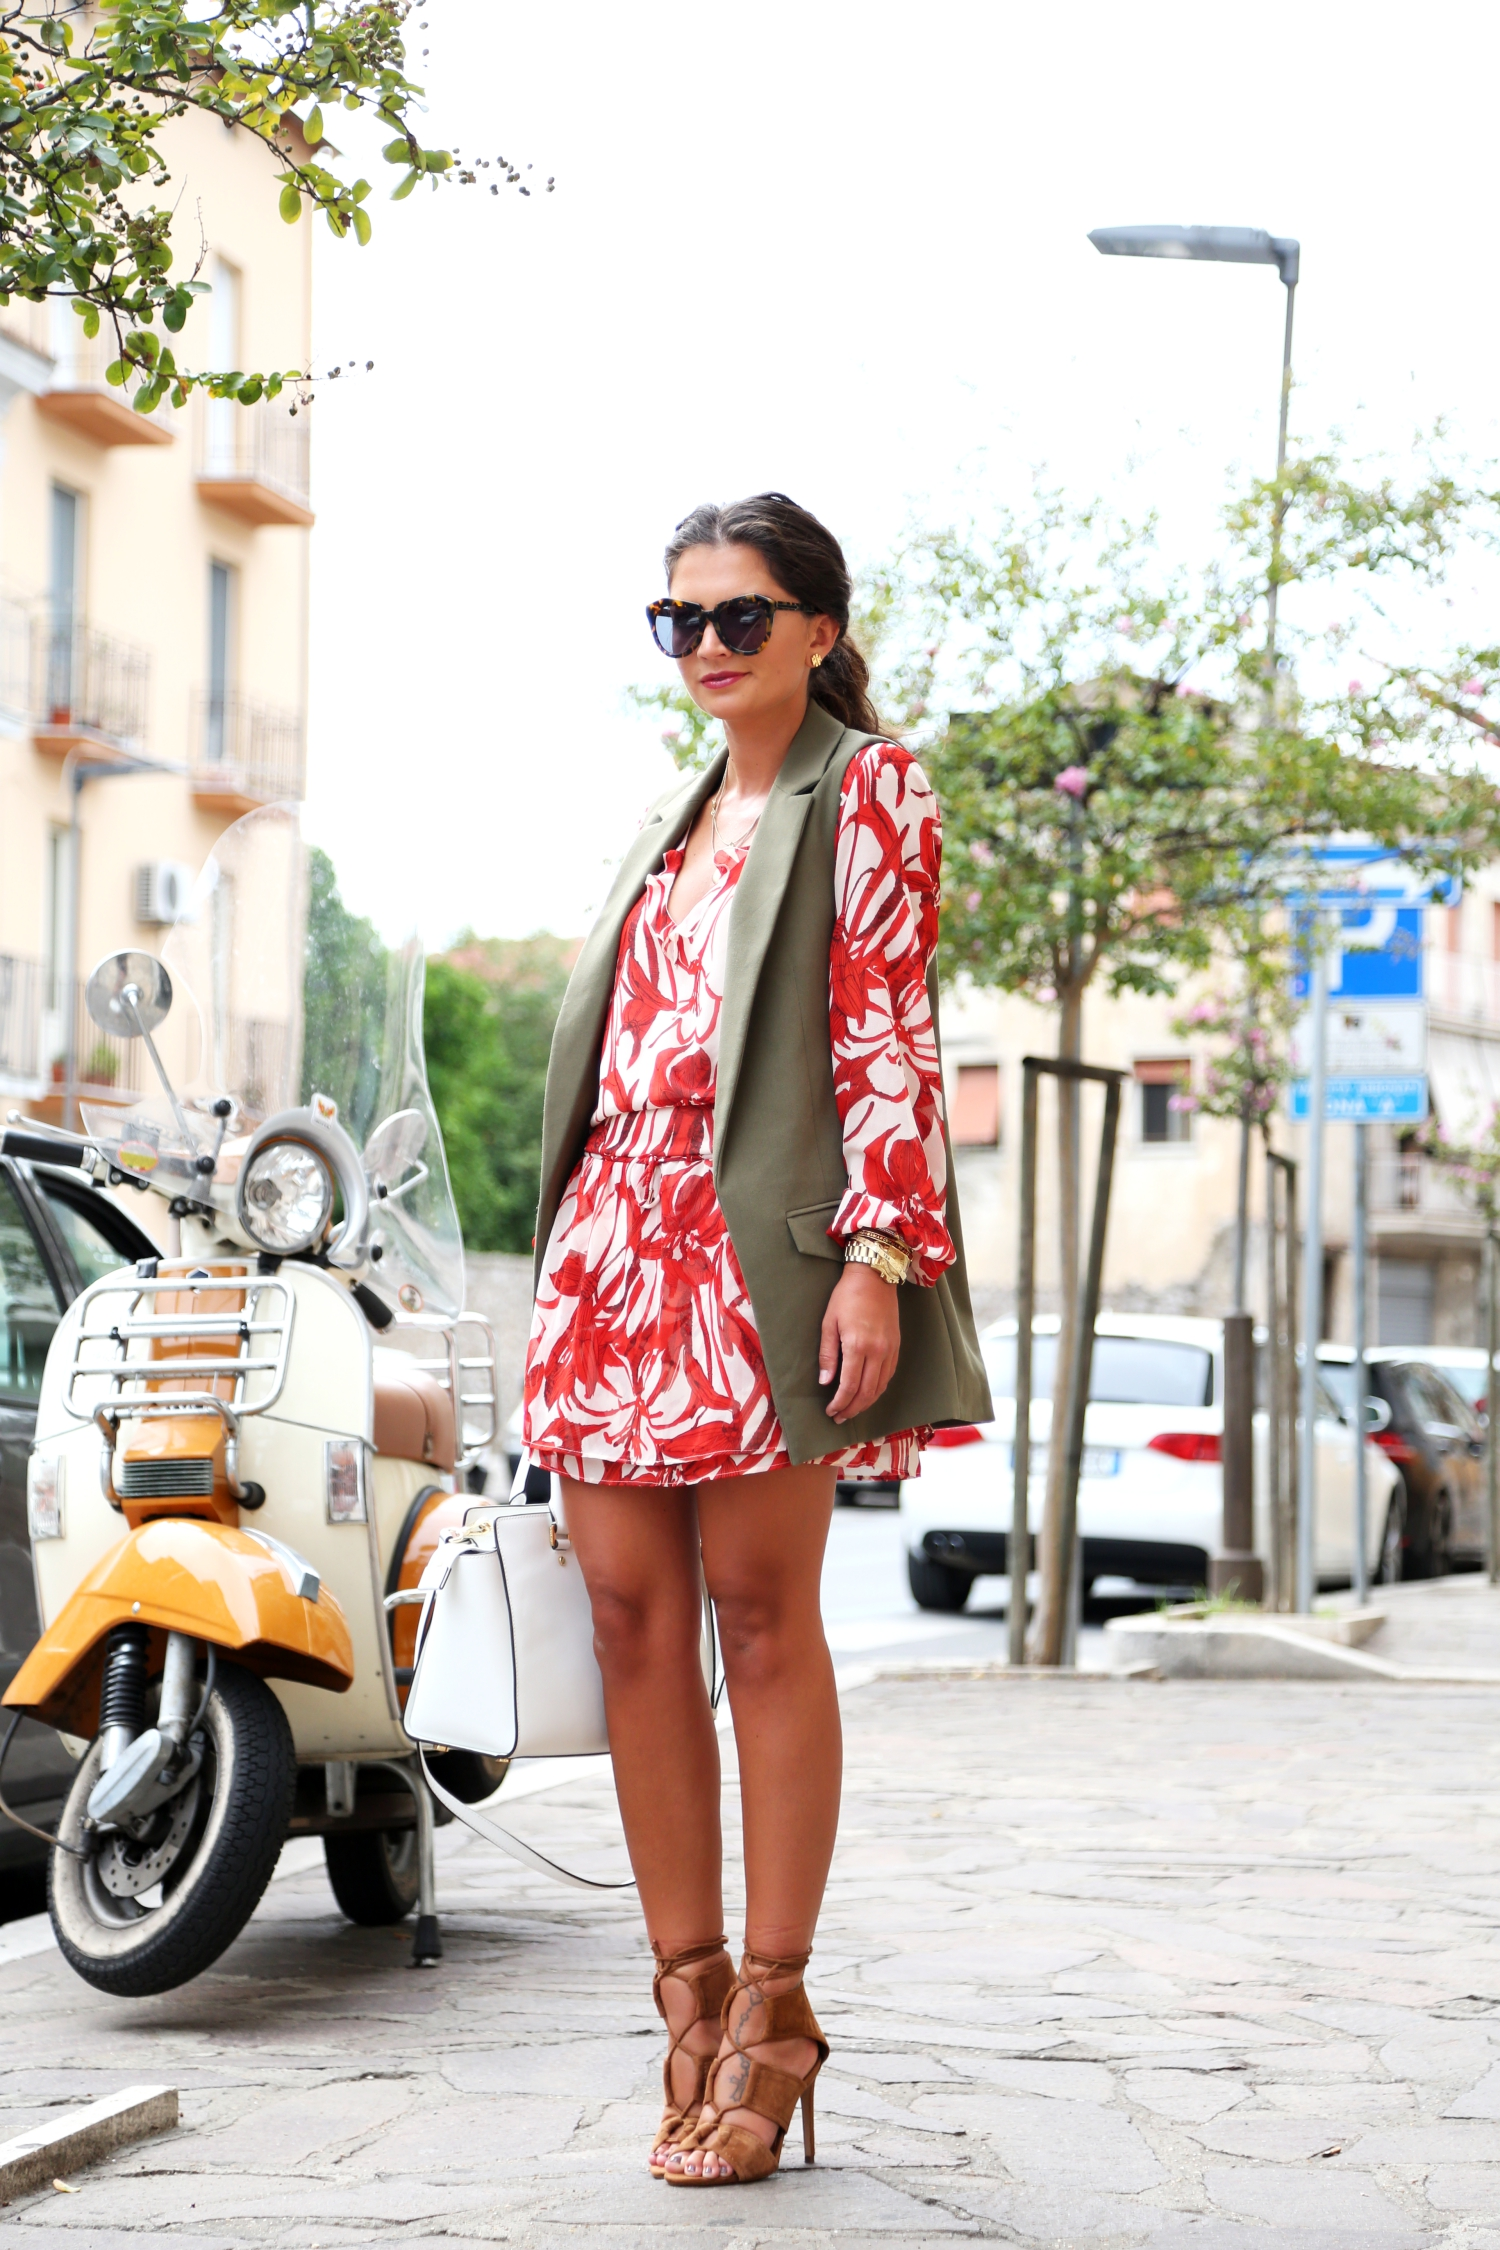 Streets Of Italy Fashionhippieloves